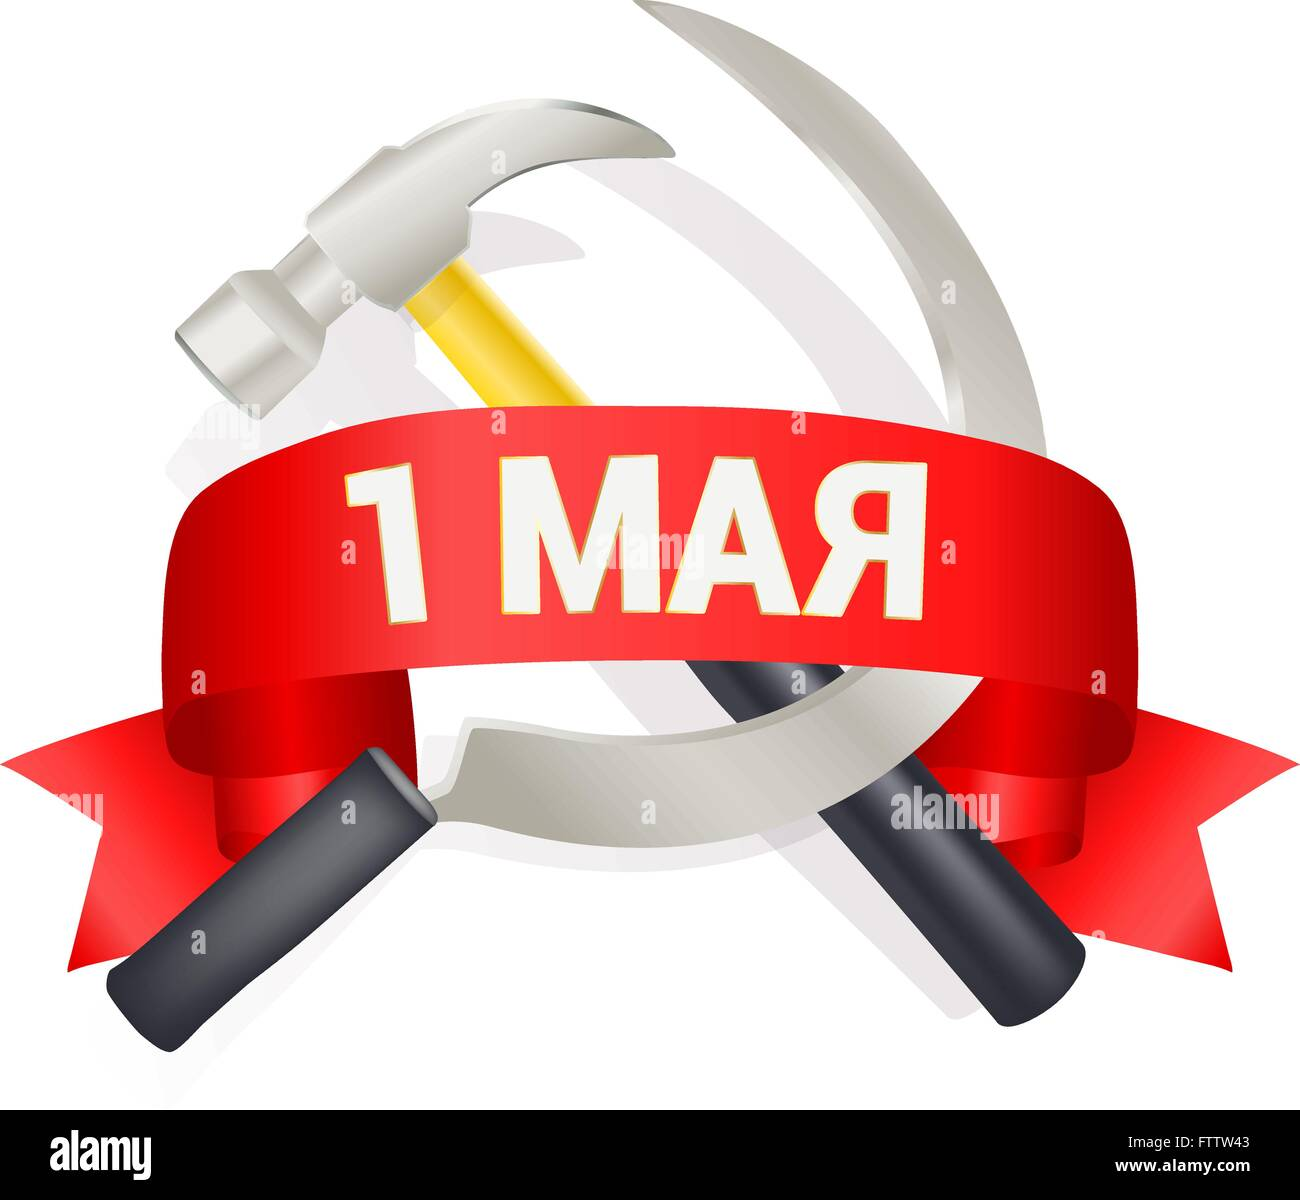 1st may day greeting illustration with hammer and sickle and a bow with text. Labor day greeting, international - Stock Vector